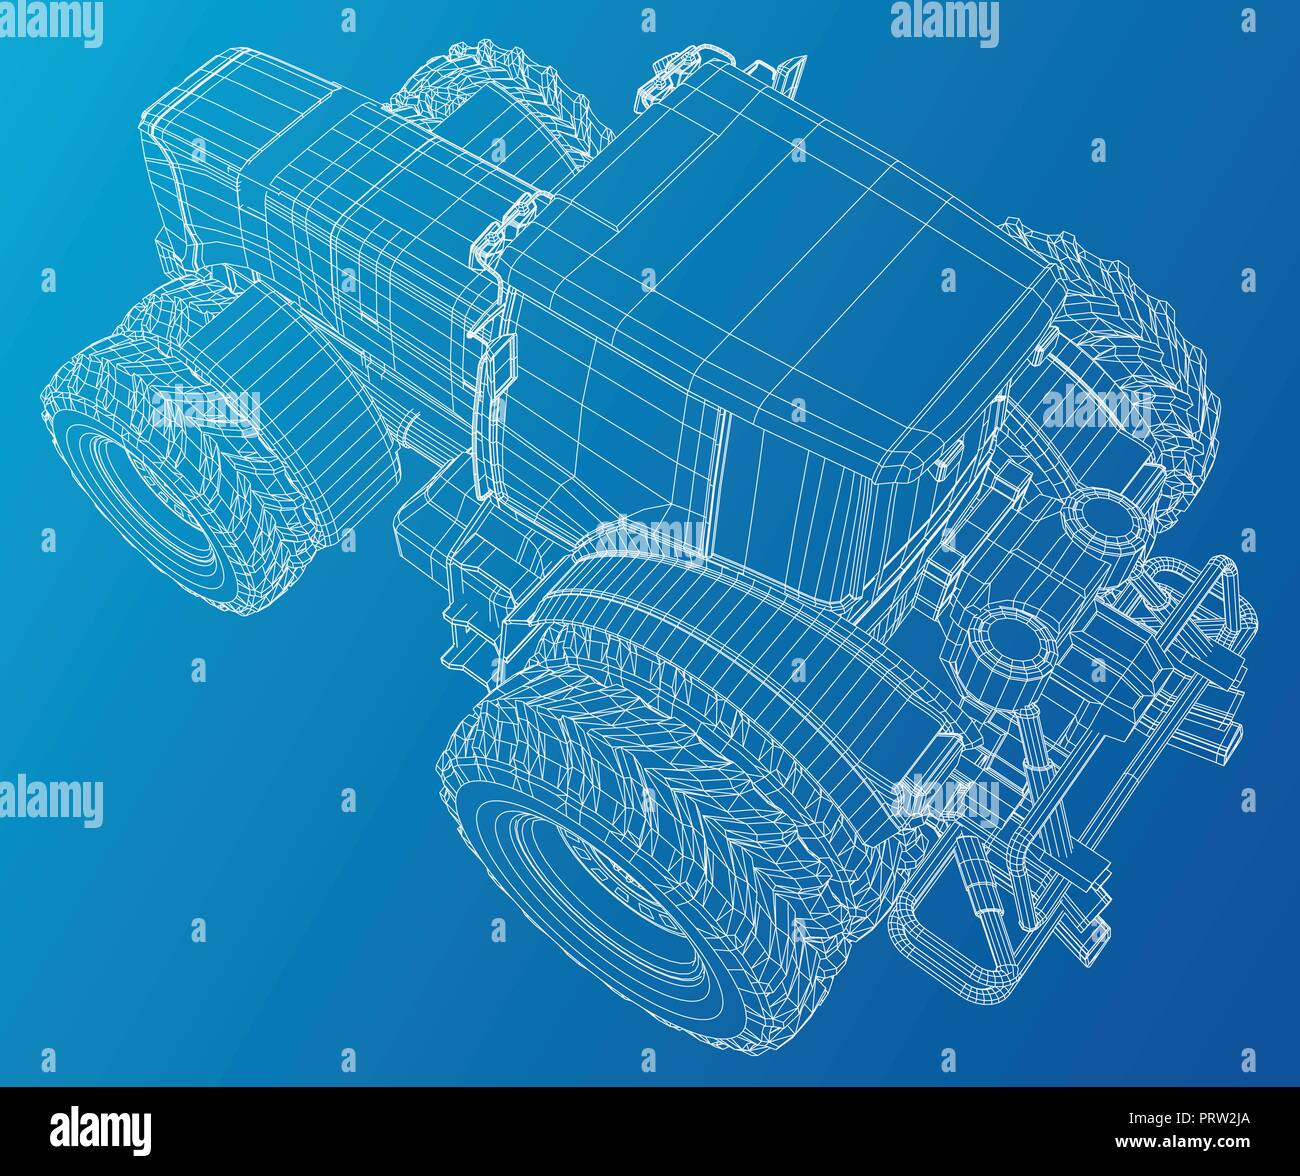 Old Farm Machinery Stock Vector Images Alamy Belarus Tractor Wiring Diagram Wire Frame Tracing Illustration Of 3d Eps 10